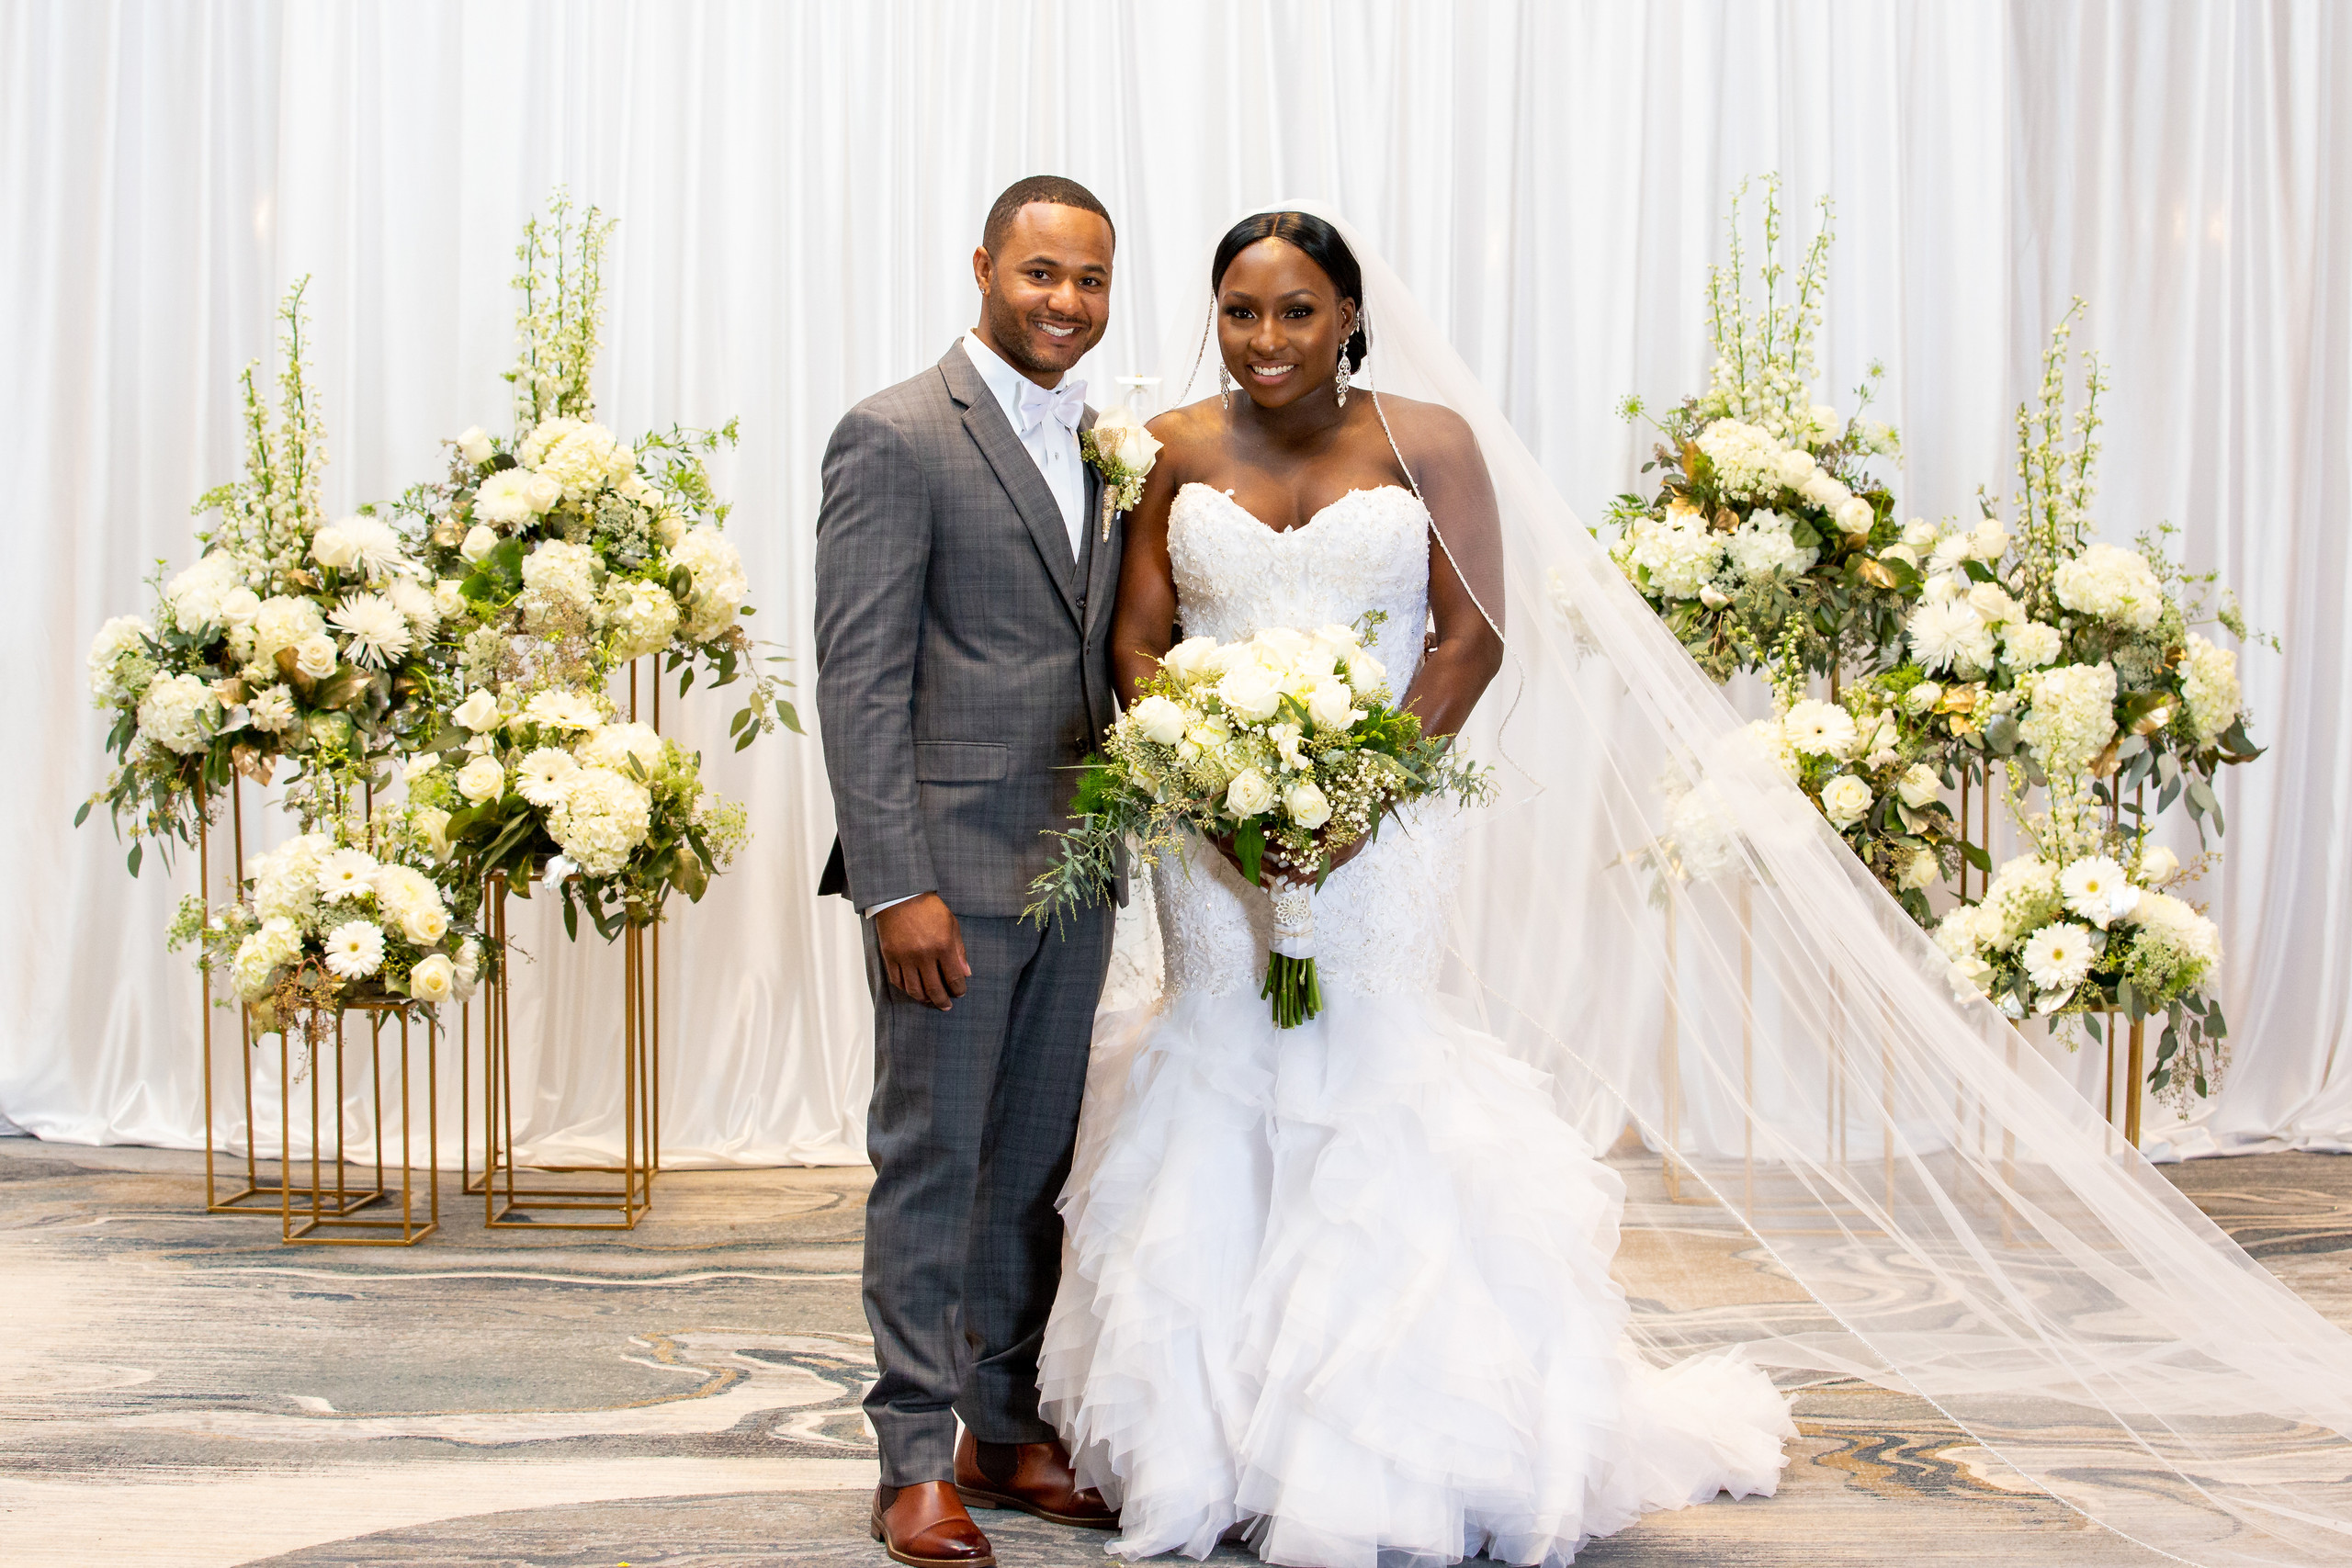 The bride and groom pose for a traditional wedding portrait during the wedding ceremony at the Hilton Main in Norfolk, Virginia.